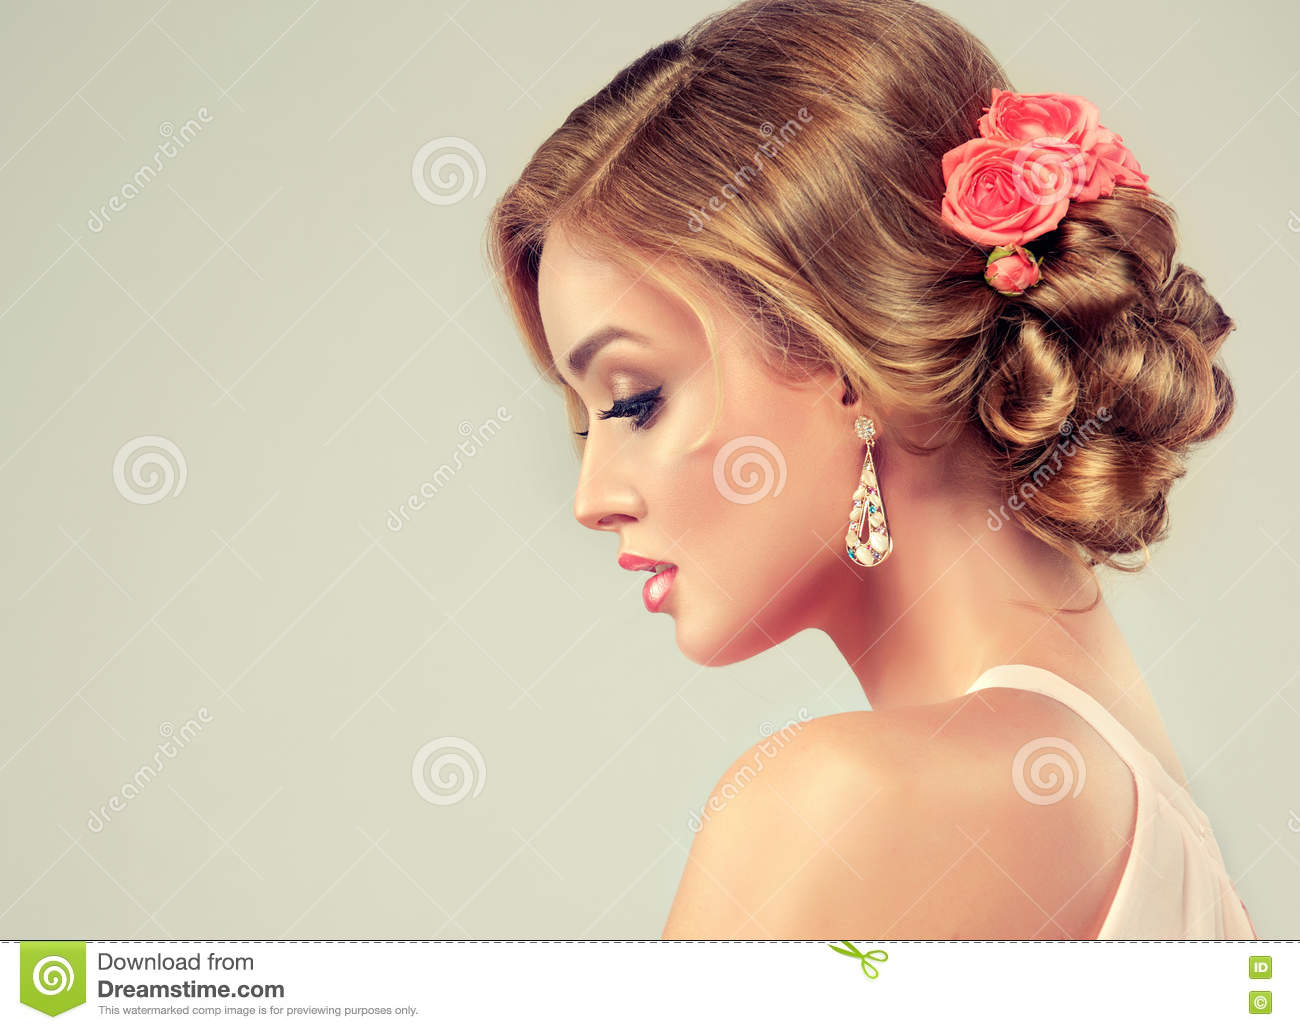 Beautiful Model With Elegant Wedding Hairstyle Stock Photo - Wedding hairstyle download